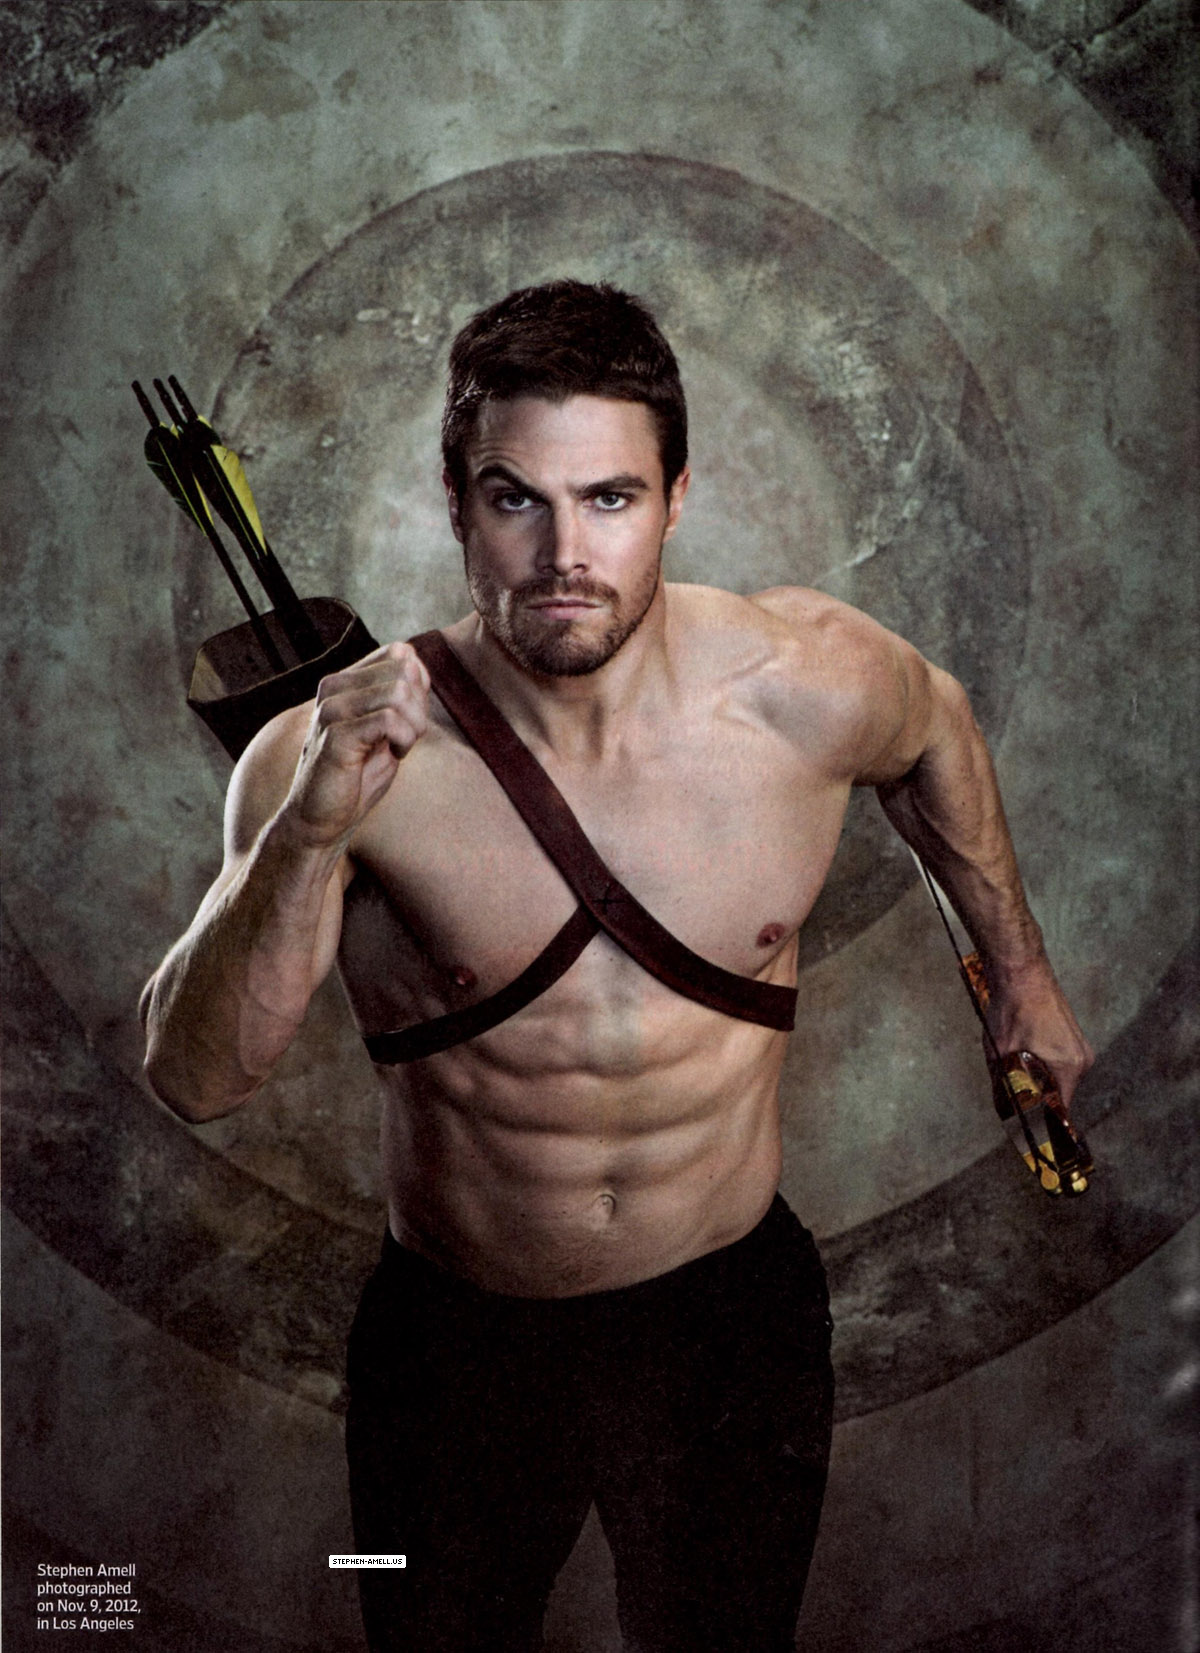 stephen amell instagramstephen amell wwe, stephen amell gif, stephen amell instagram, stephen amell vk, stephen amell wife, stephen amell height, stephen amell arrow, stephen amell gif hunt, stephen amell png, stephen amell 2017, stephen amell wiki, stephen amell workout, stephen amell and emily bett rickards, stephen amell википедия, stephen amell brother, stephen amell training, stephen amell hairstyle, stephen amell wikipedia, stephen amell вк, stephen amell beard